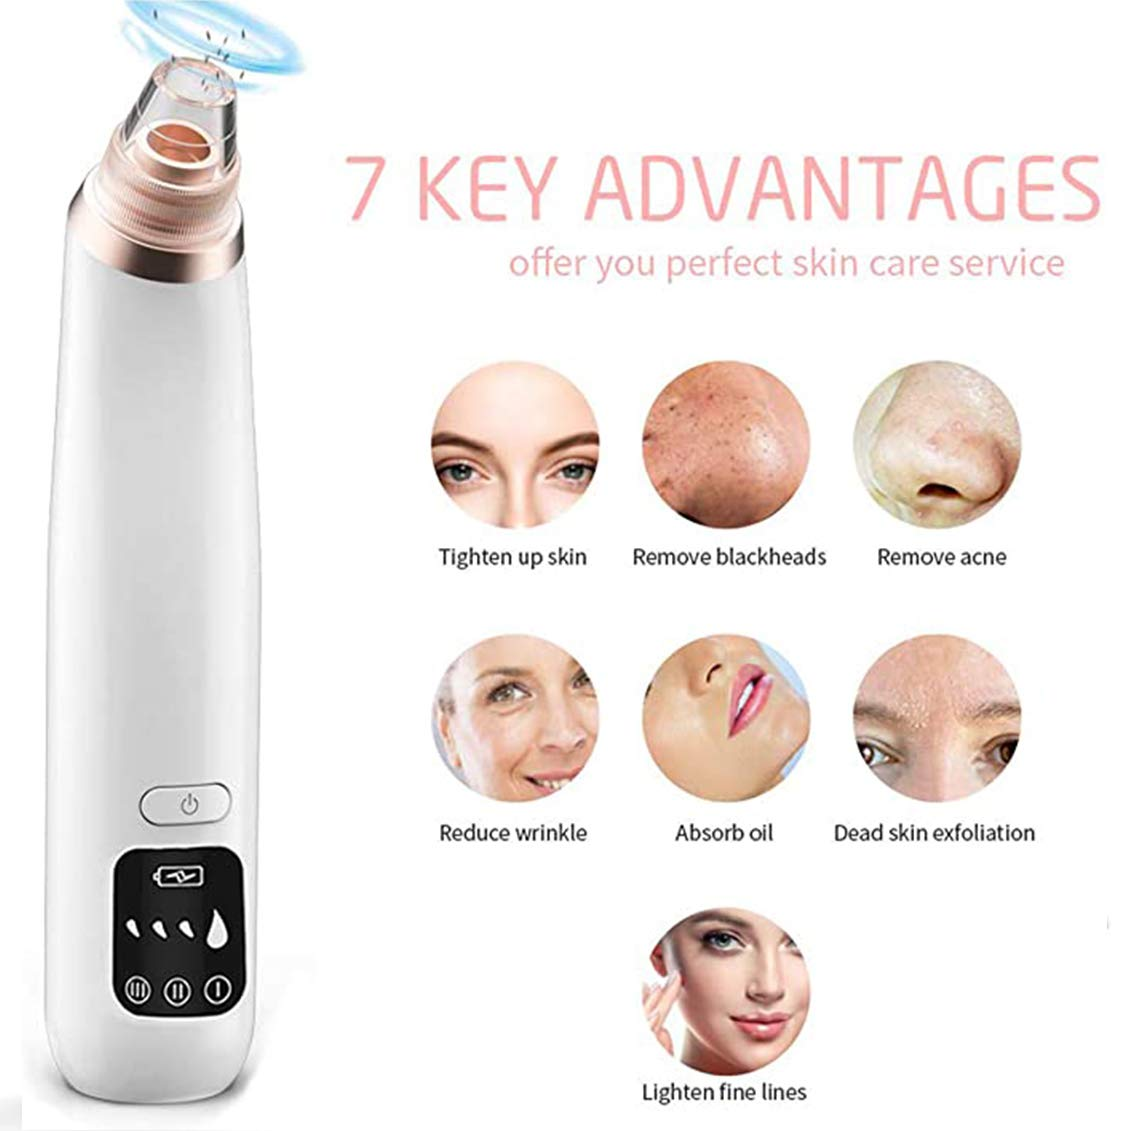 X-CHENG Blackhead Remover Vacuum - 2020 Upgraded Blackhead Suction Tool with Hot Compress - USB Rechargeable Pore Vacuum-Facial Pore Cleanser Suction Tool with LED Display-Suction Force for All Skin.: Beauty